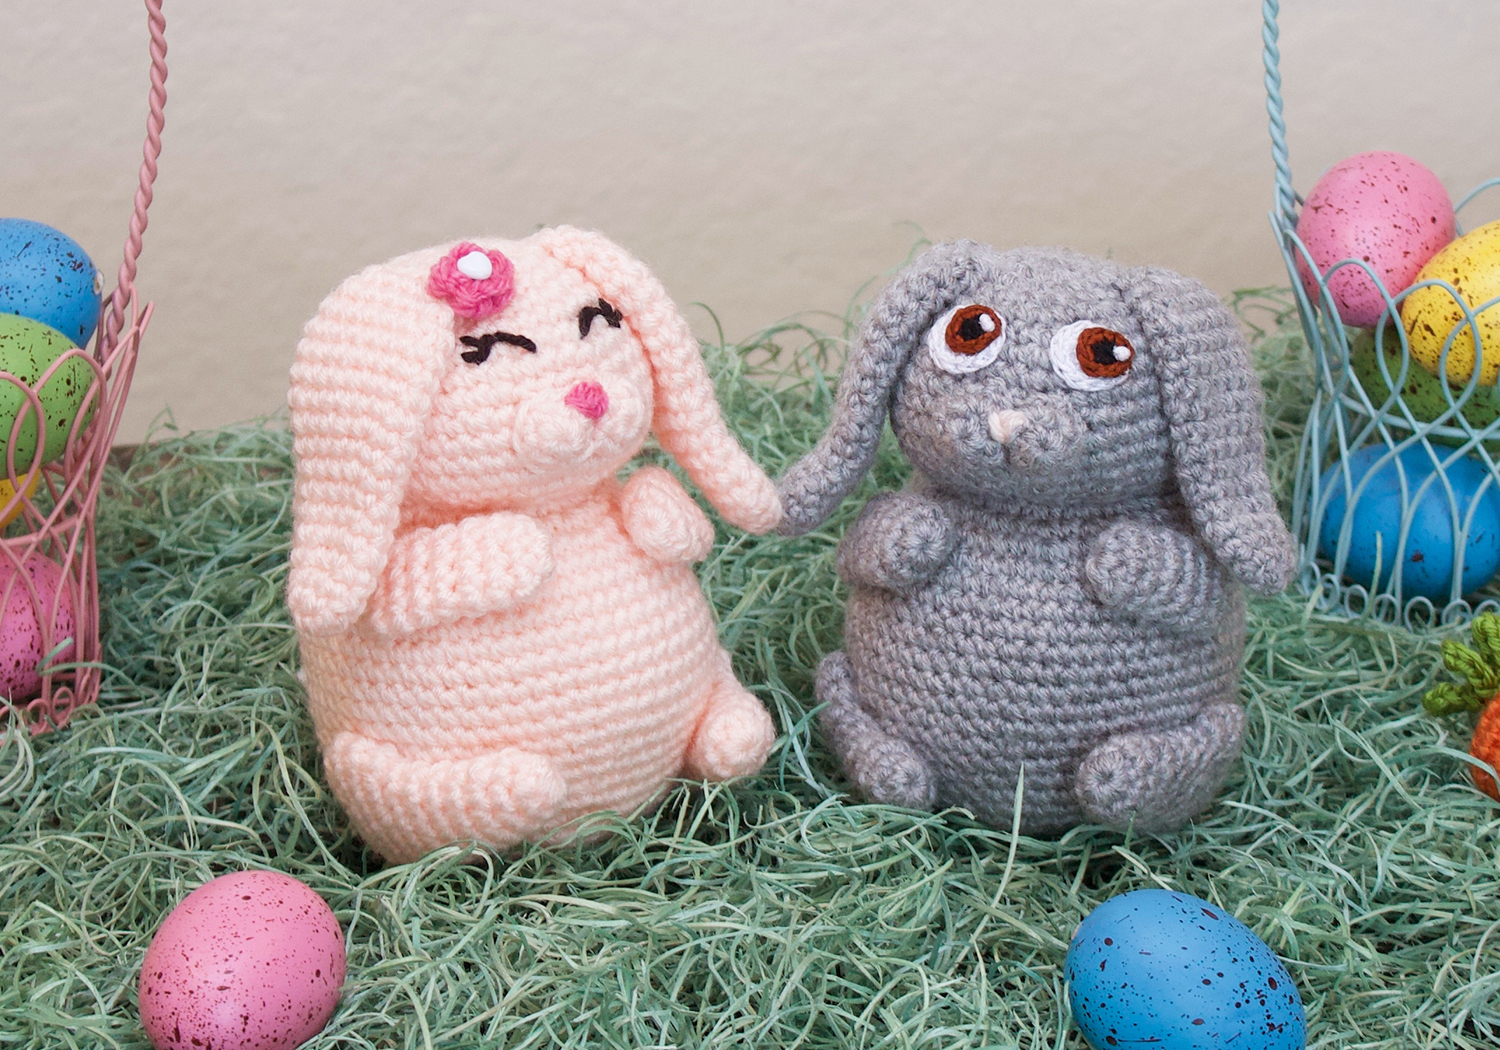 Snoo from Reddit! | Crochet patterns, Free crochet pattern, Easy ... | 1050x1500